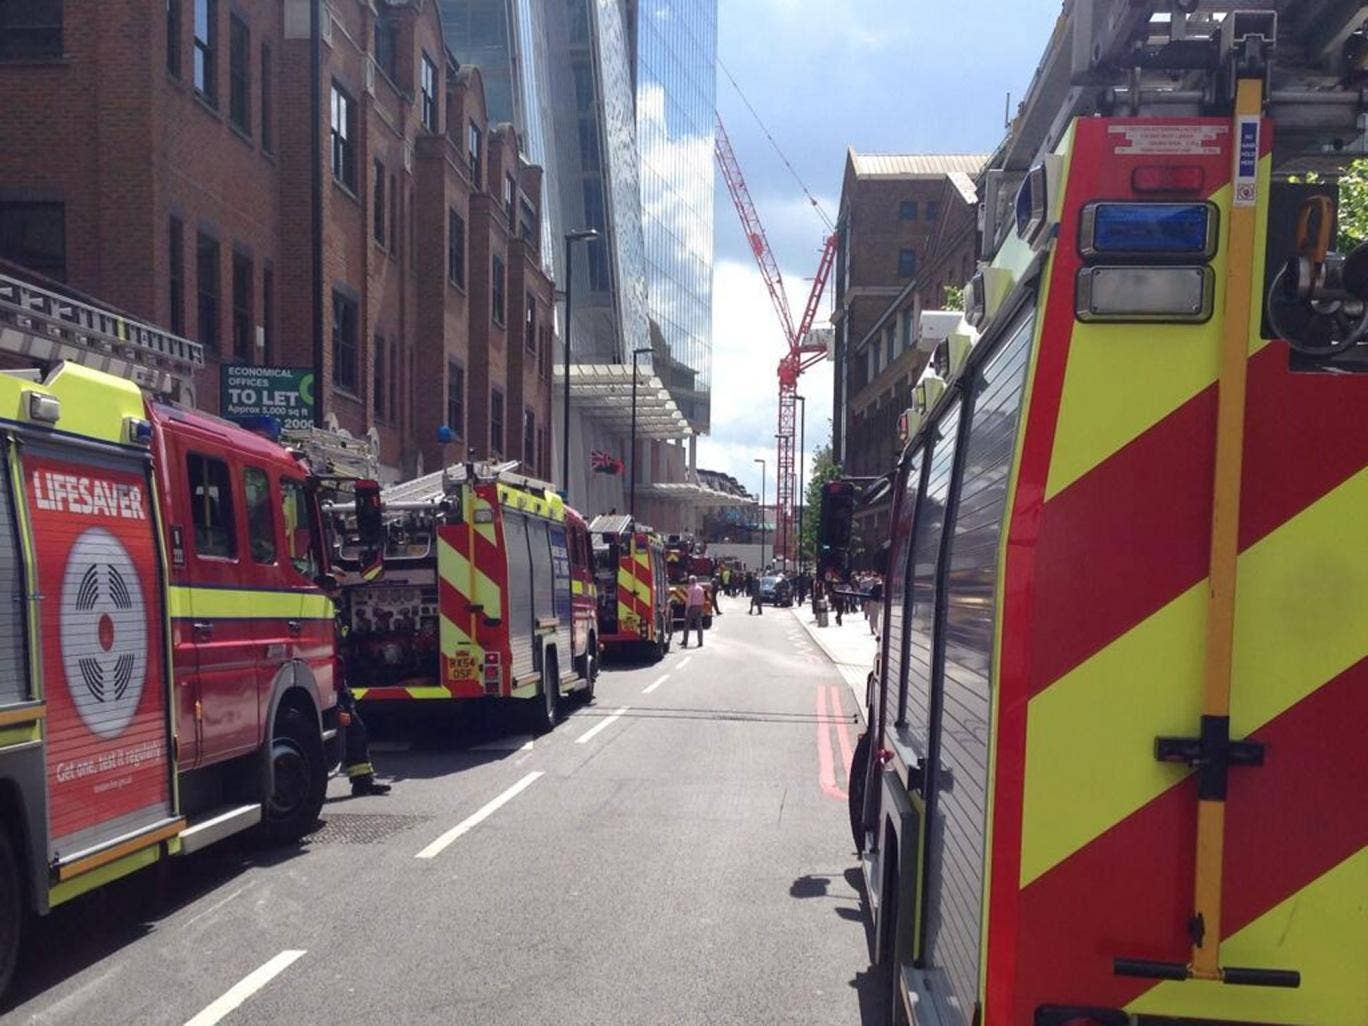 Witnesses outside the Shard praised the rapid response from fire services, which are investigating reports of smoke in the basement